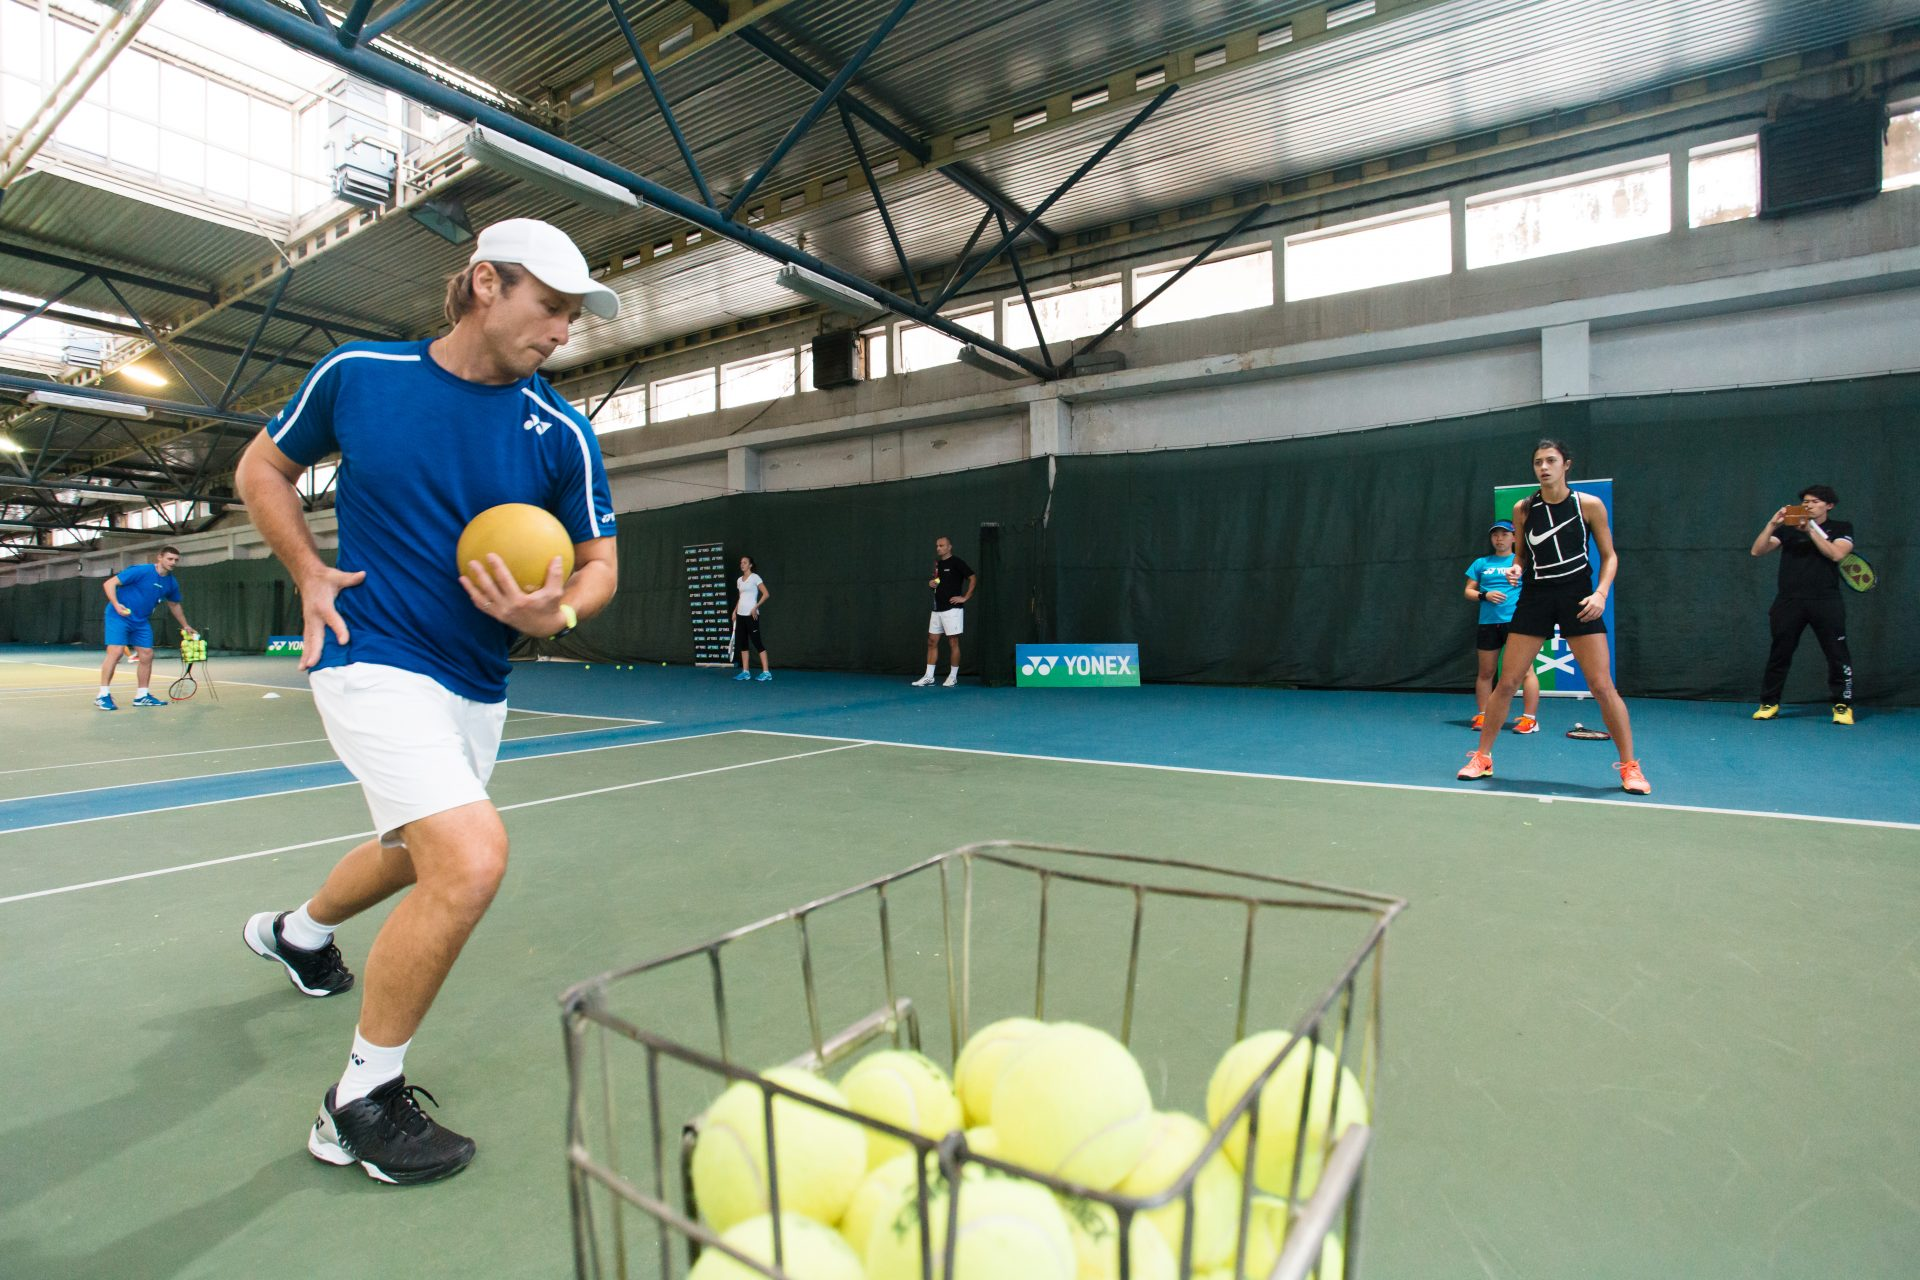 Nick Horvat Tennis Coach on Practice during Tournaments Photo by Vuri Matija